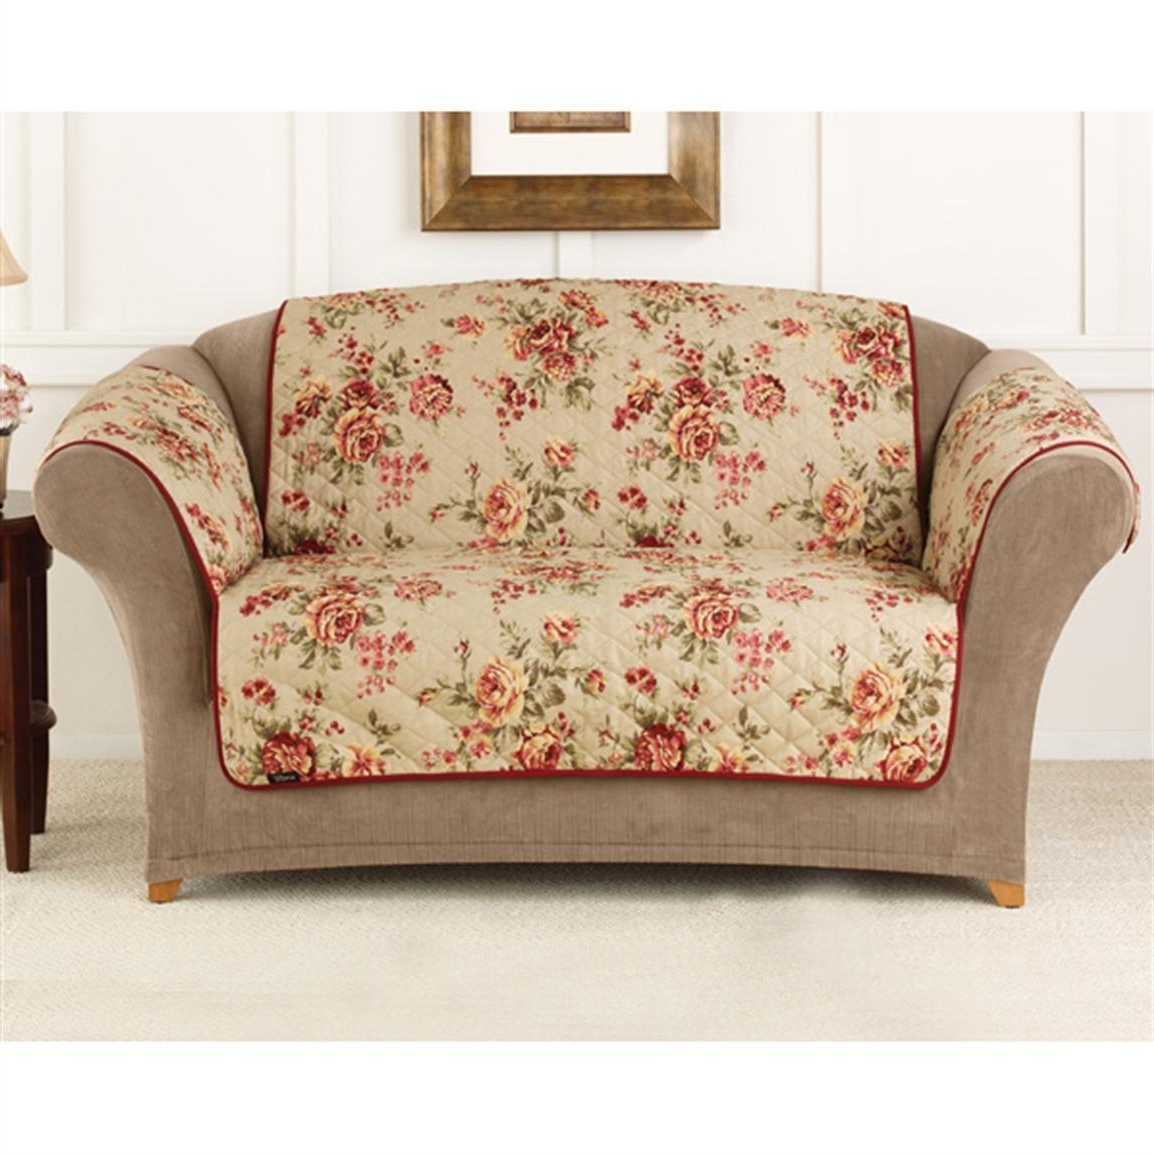 Furniture : Covers For Sofas And Couch Sure Fit Lexington Floral With Regard To Most Up To Date Chintz Covered Sofas (View 7 of 15)